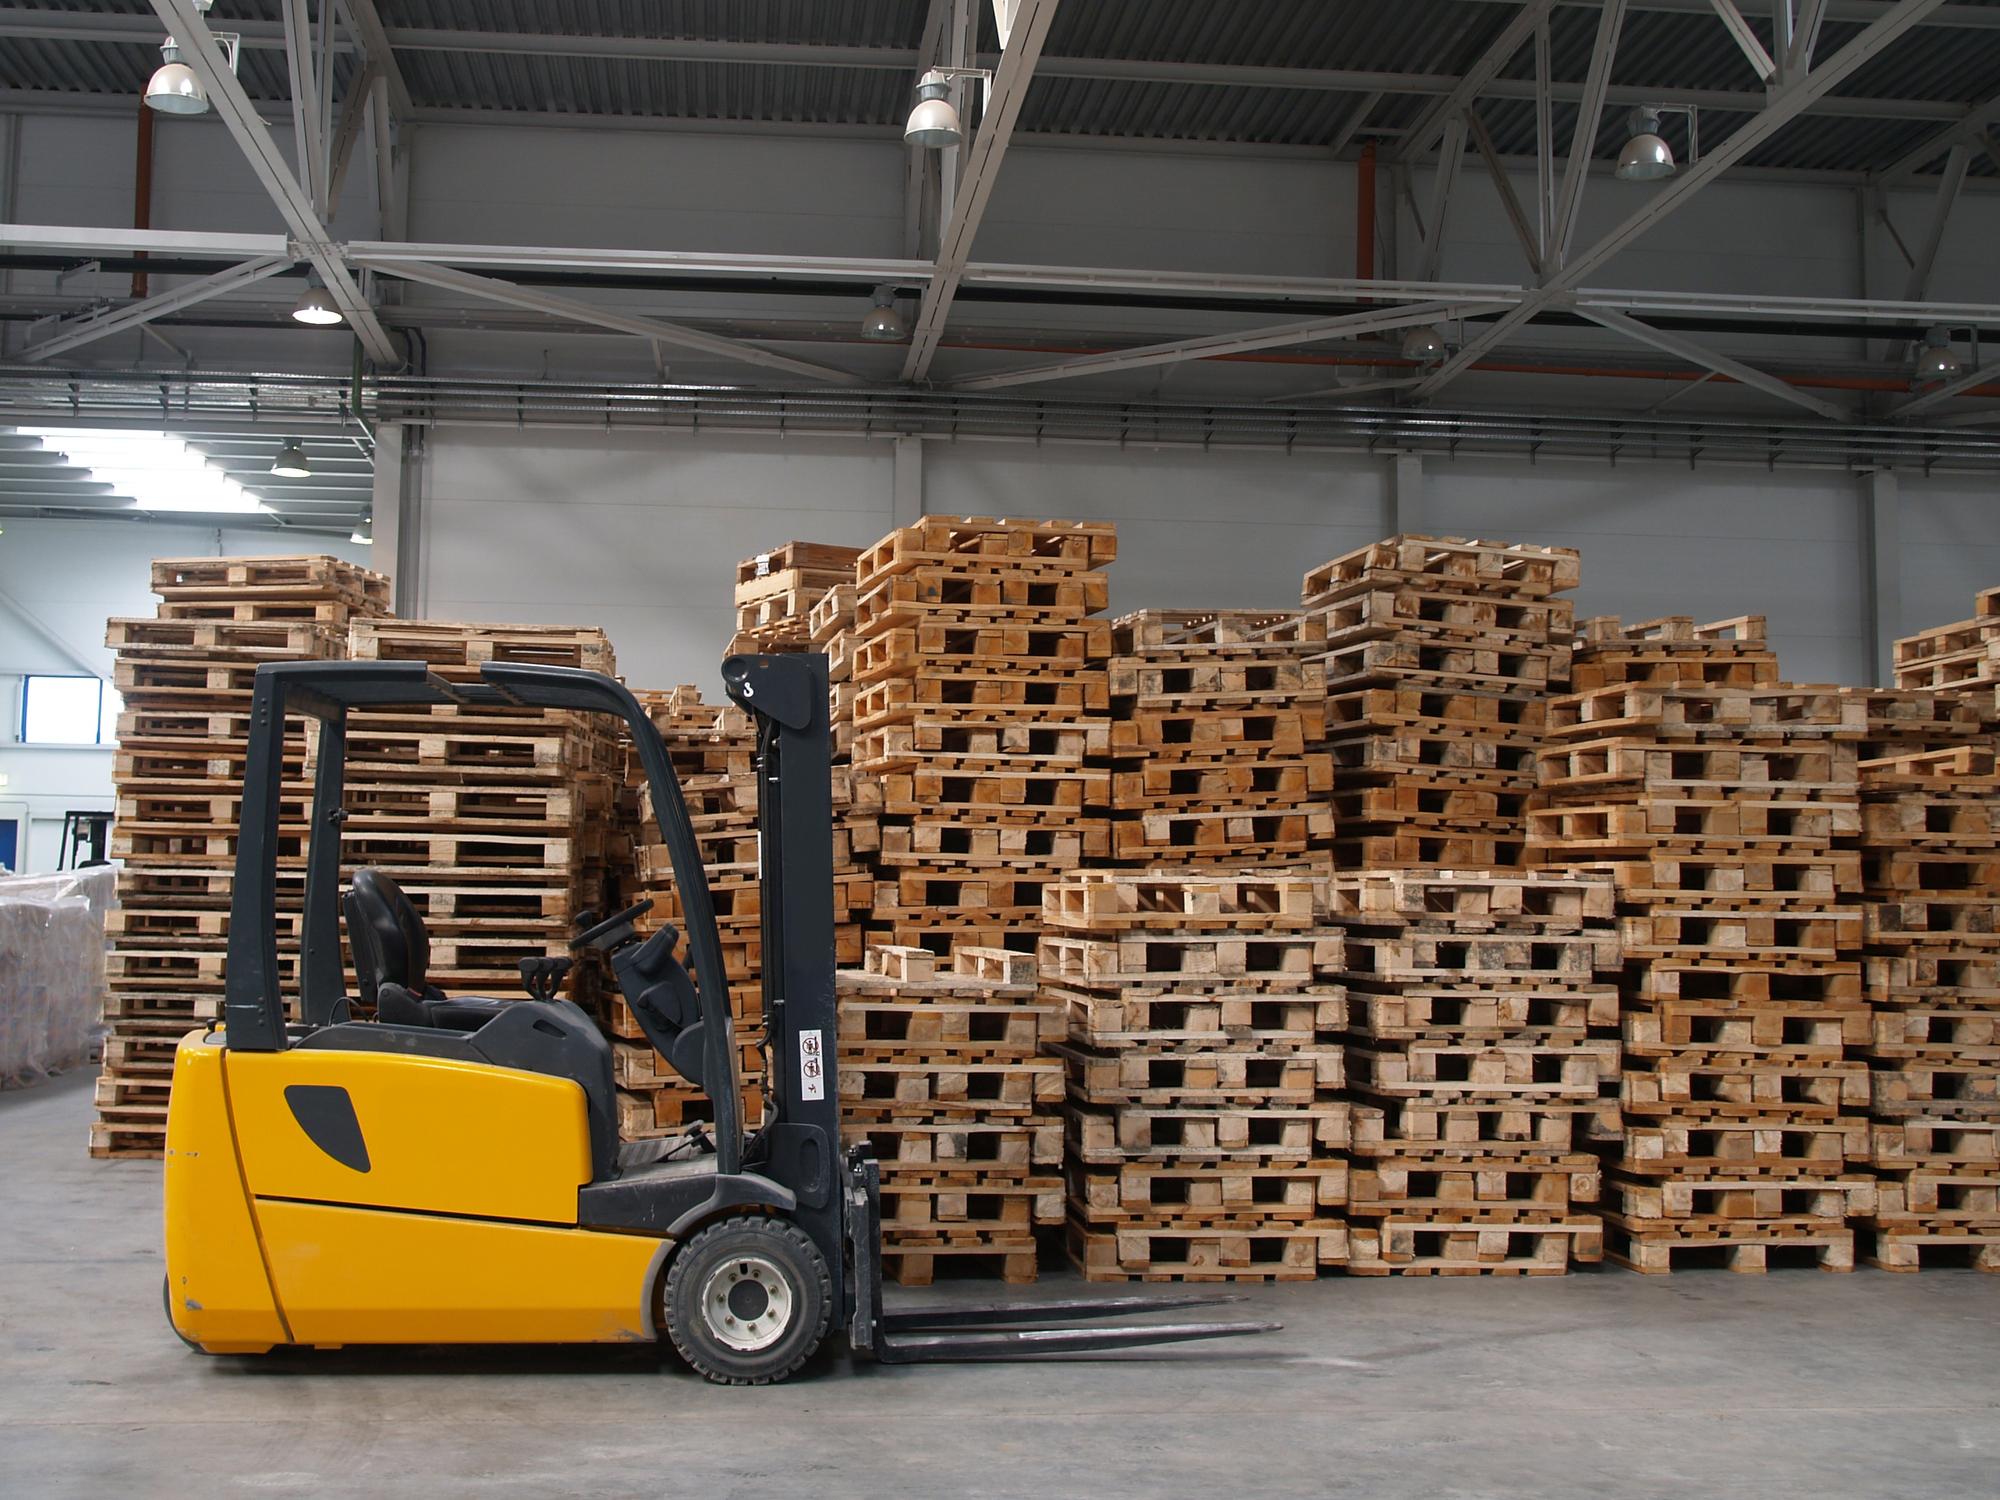 Pallets in a warehouse with a forklift